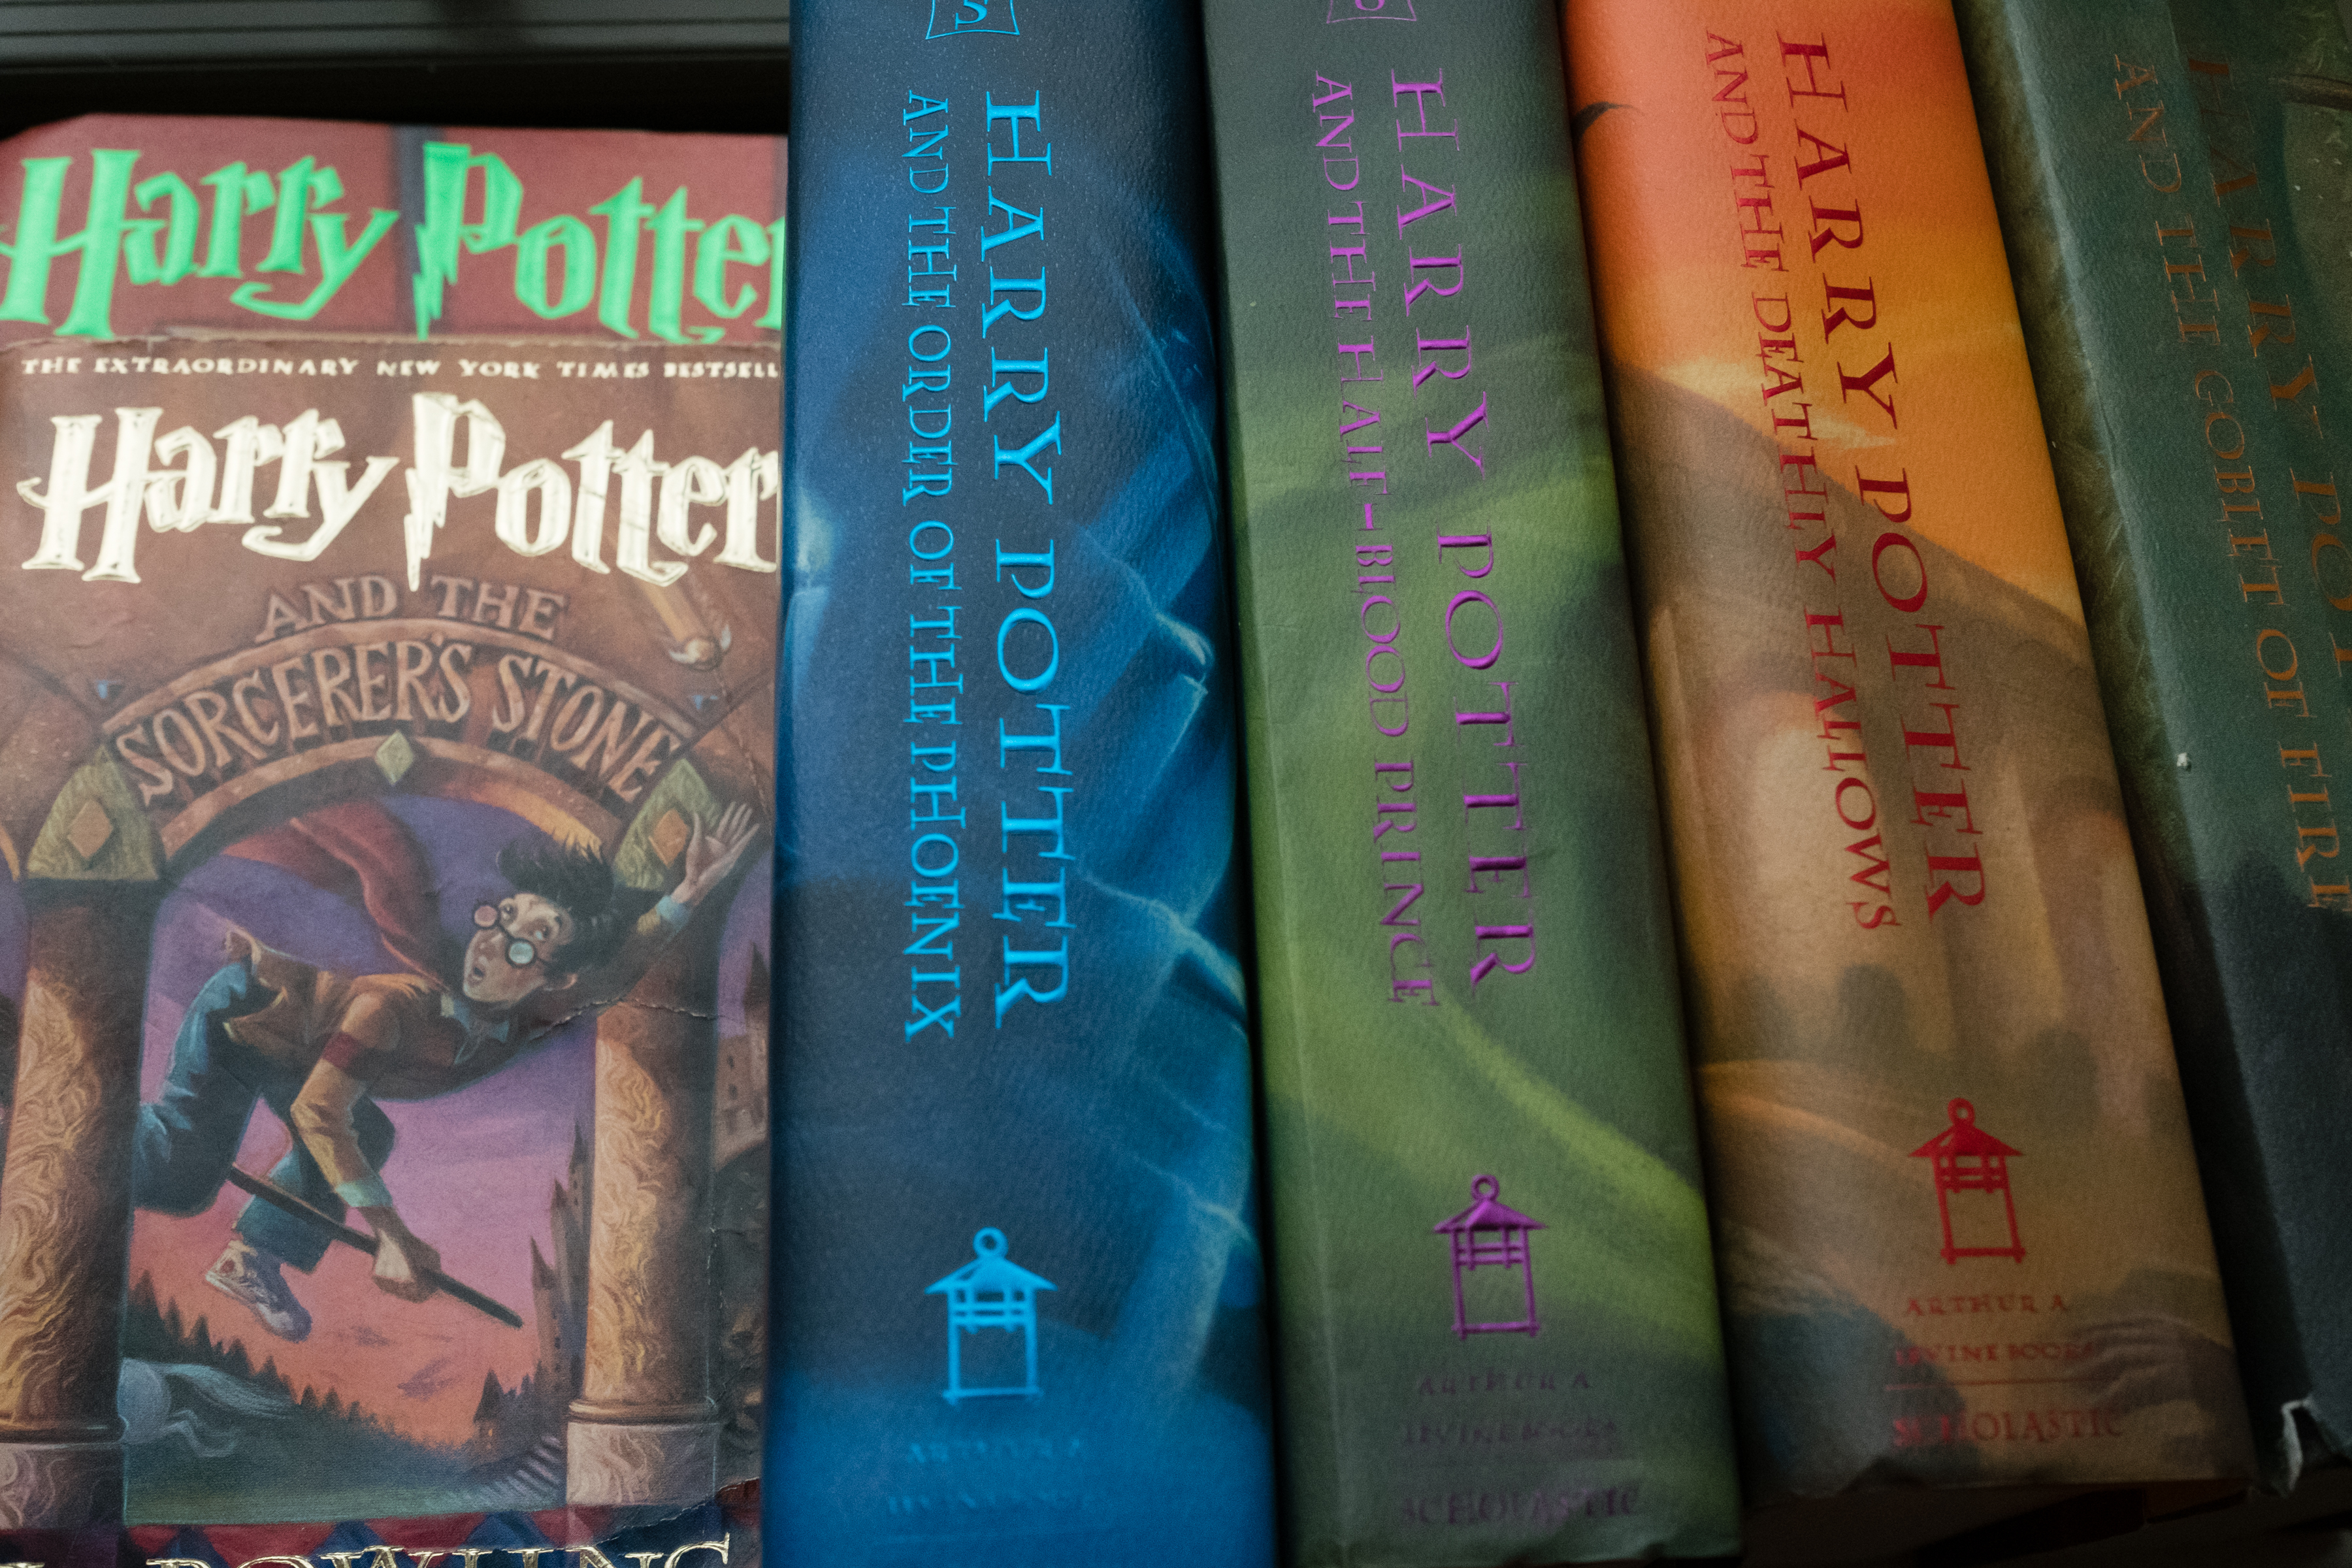 A collection of Harry Potter books are pictured at the home of Caitlin Moore in Washington, D.C.